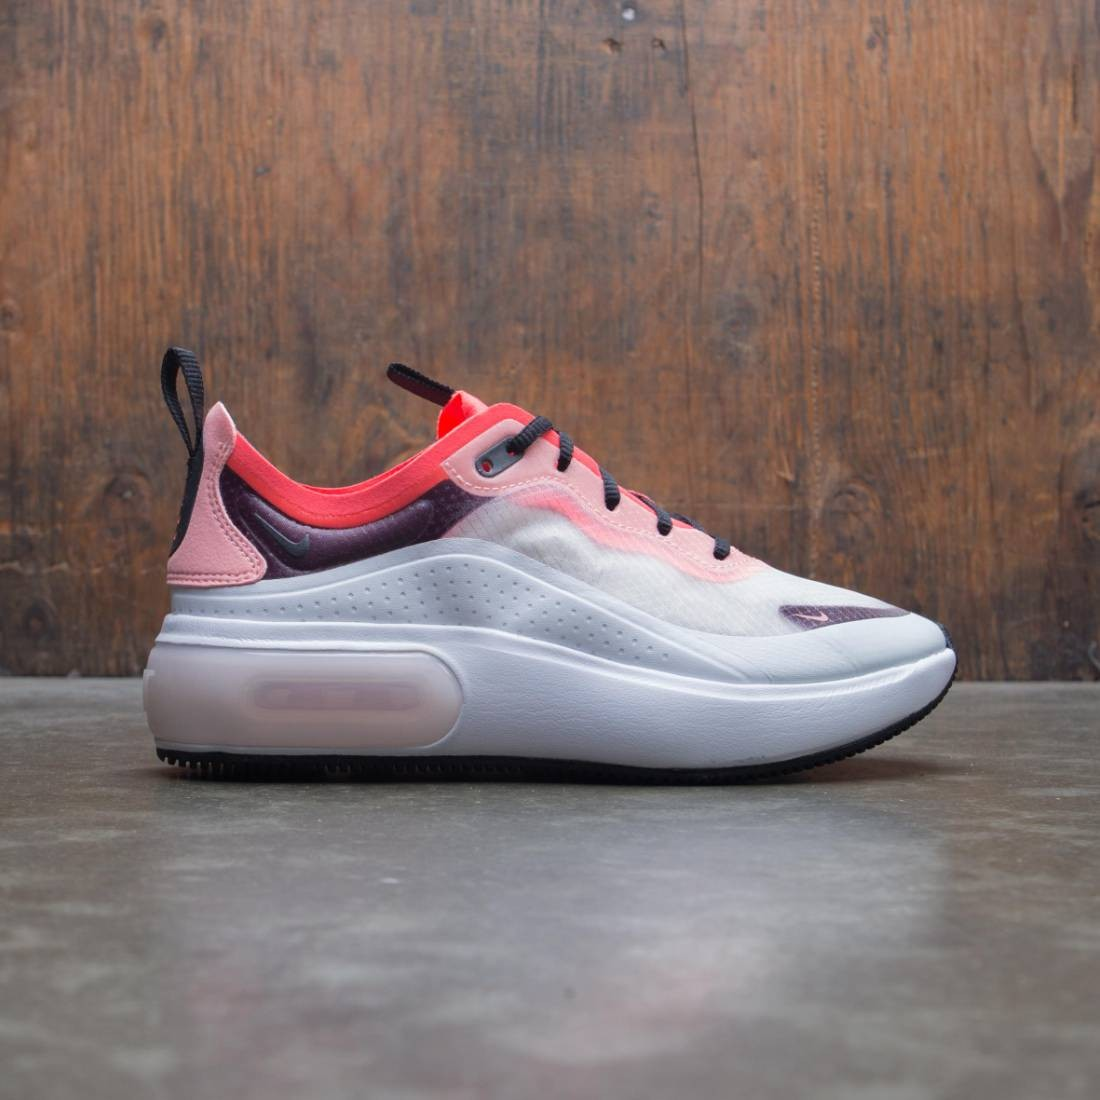 una vez postre agudo  nike women w nike air max dia se qs off white black white flash crimson